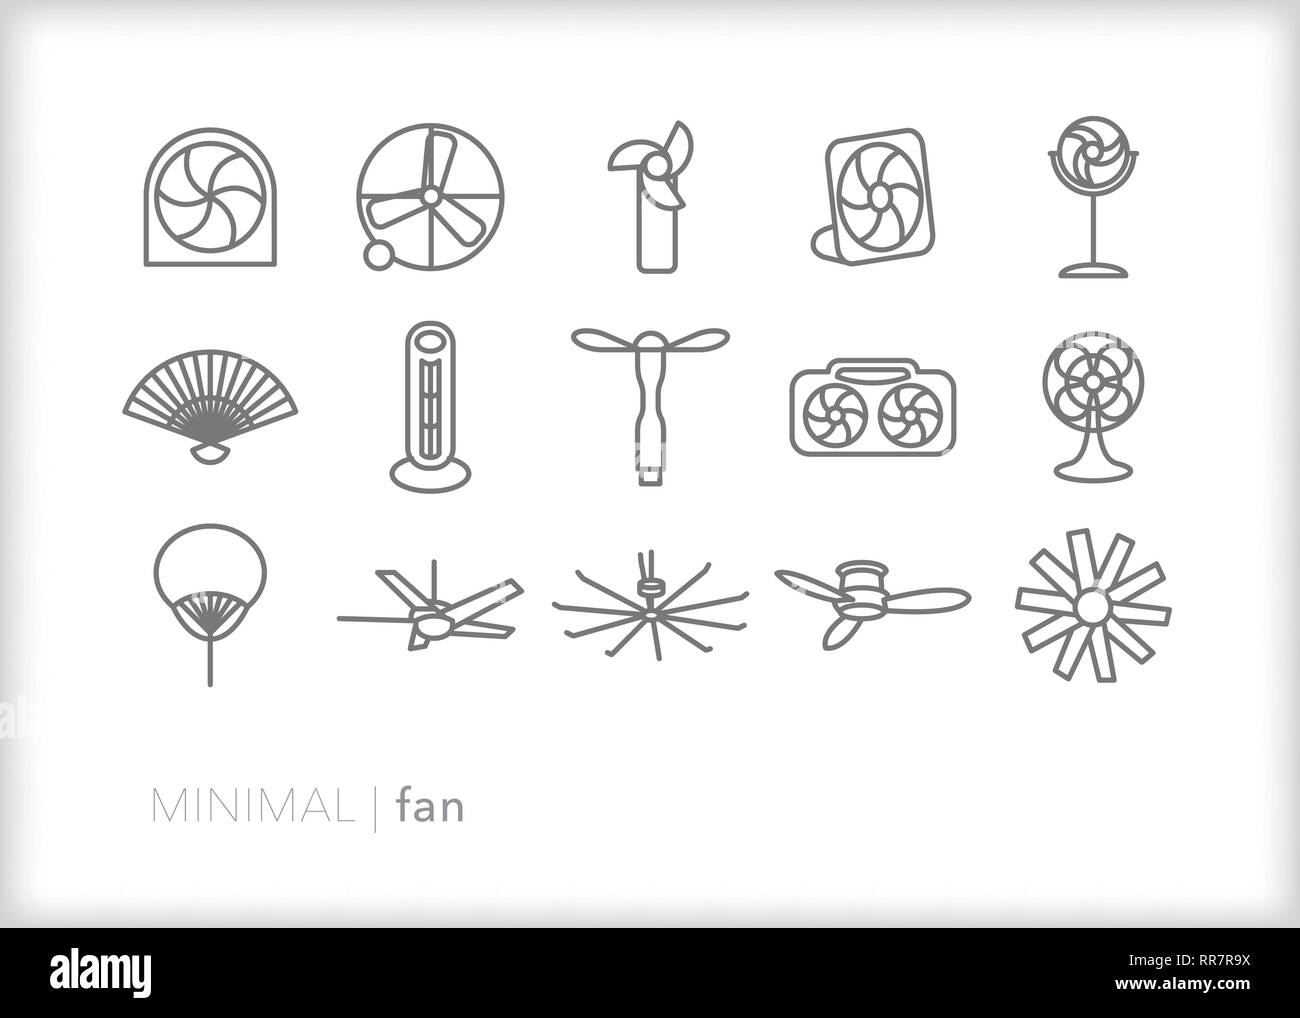 Set of 15 fan line icons for cooling down on a hot summer day, from ceiling fans to personal fans to oscillating fan - Stock Vector